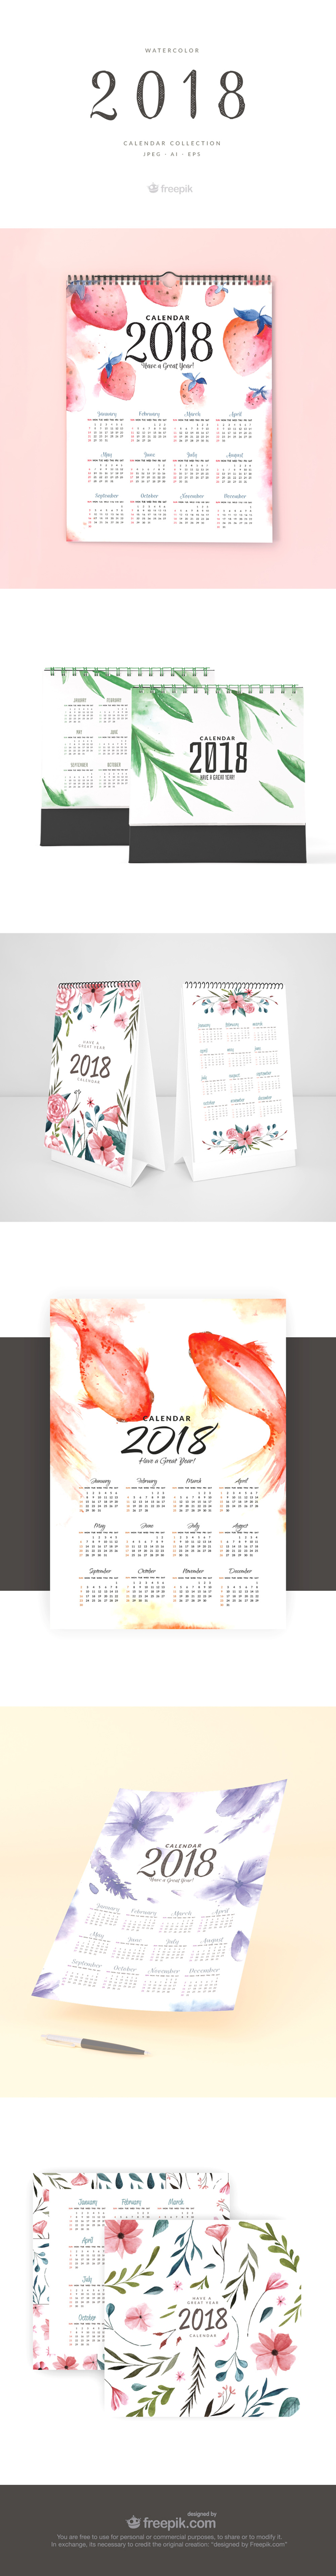 watercolor 2018 calendar template